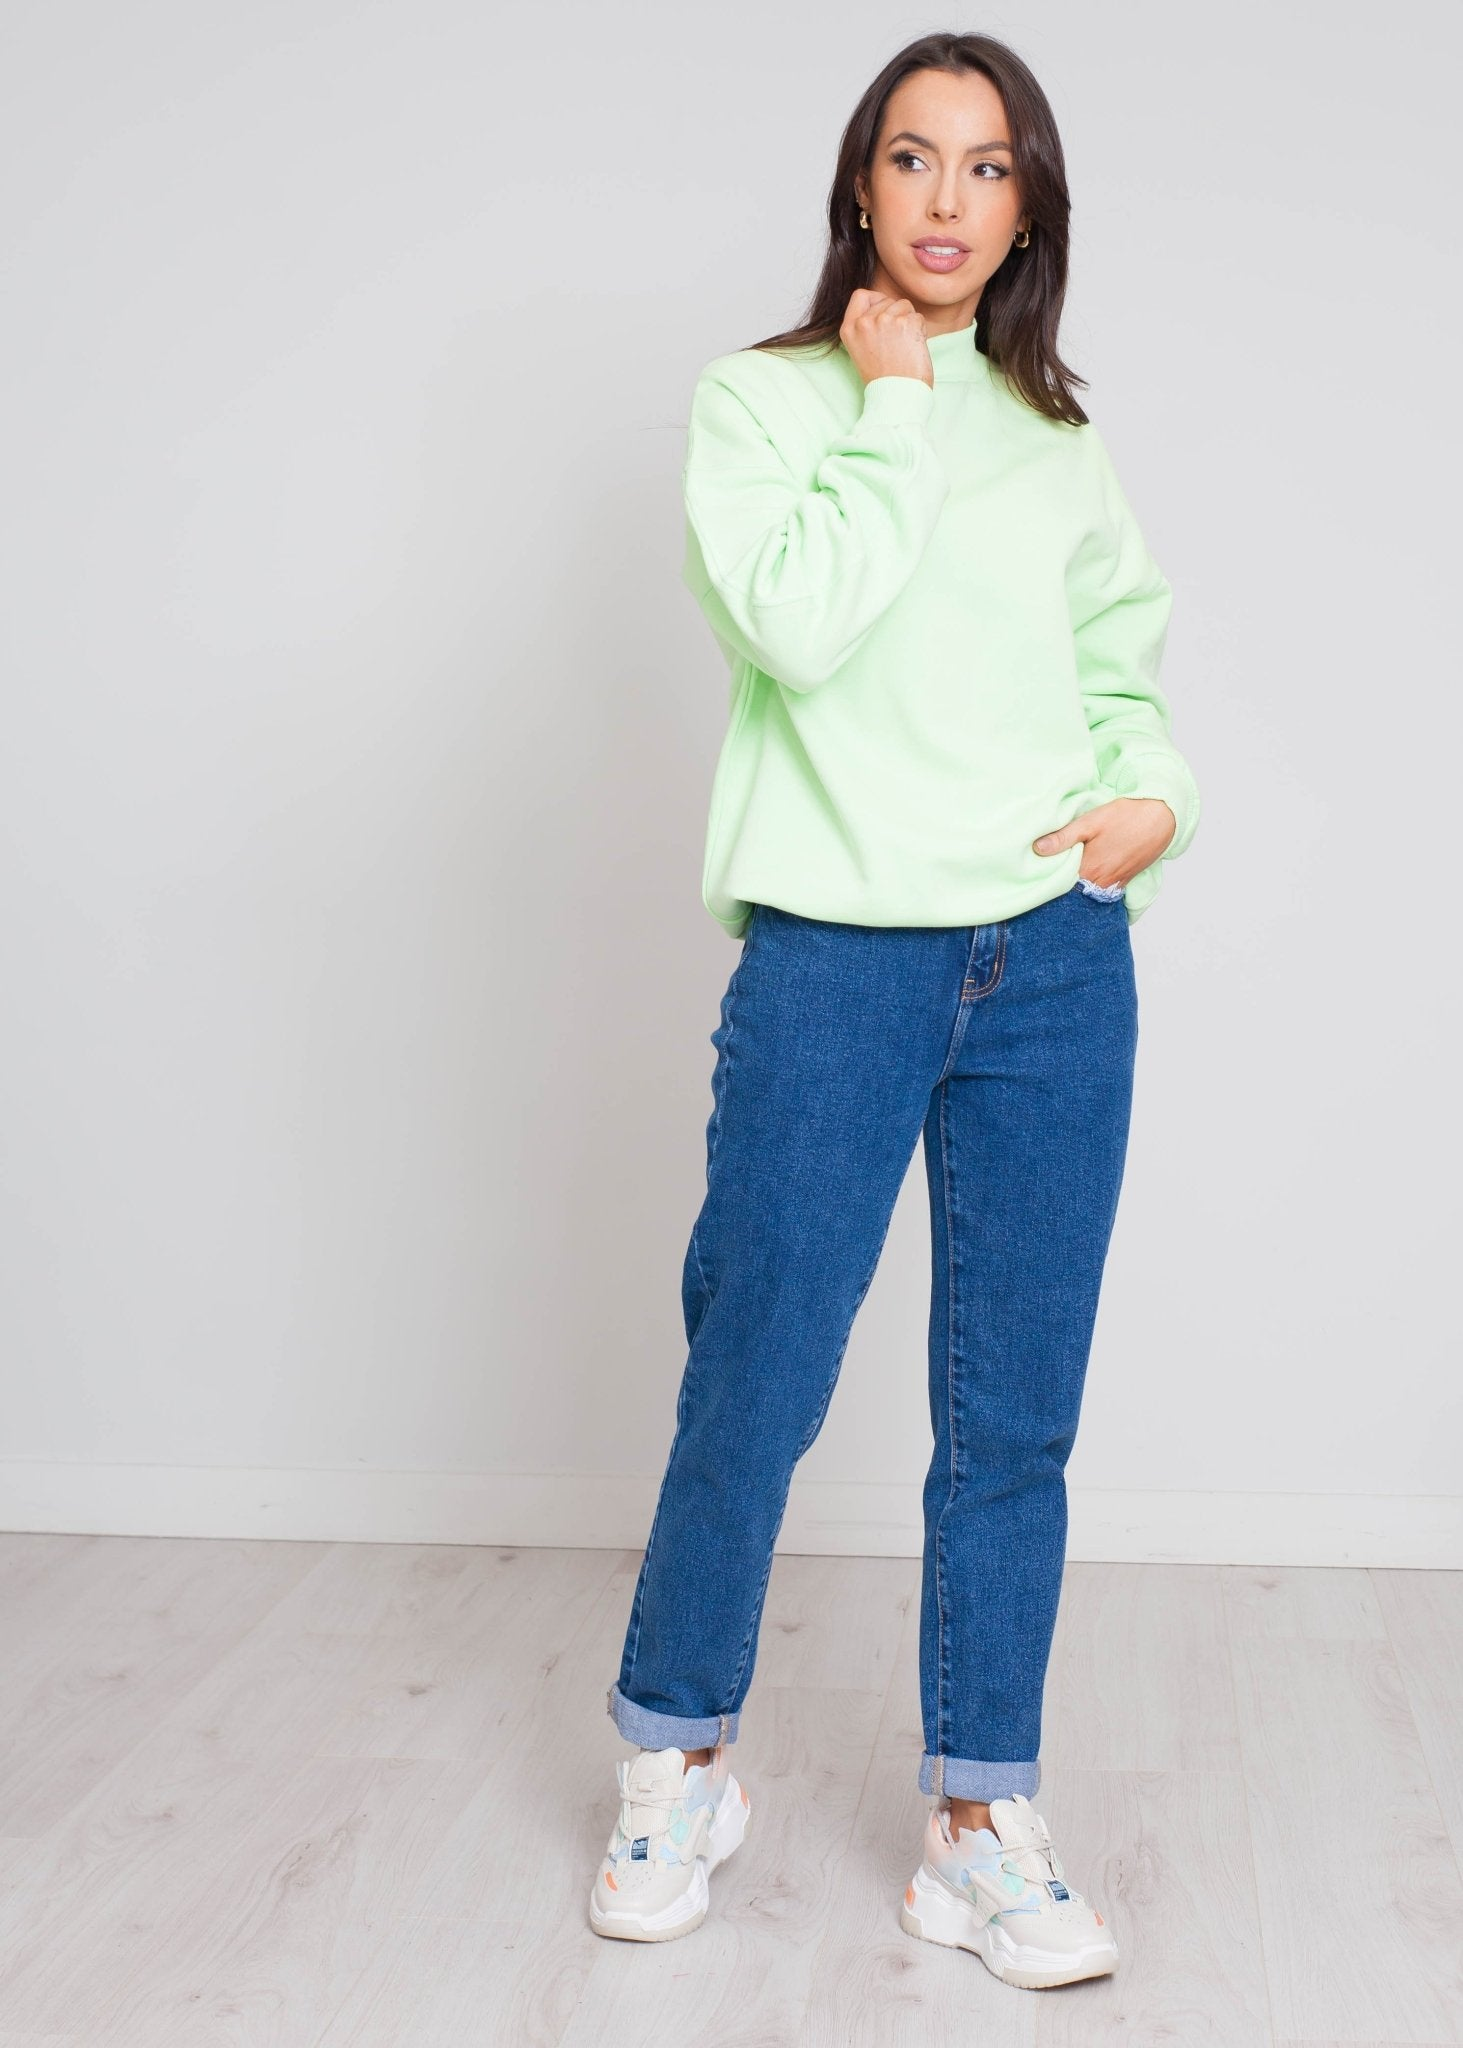 Danni Sweatshirt In Green - The Walk in Wardrobe